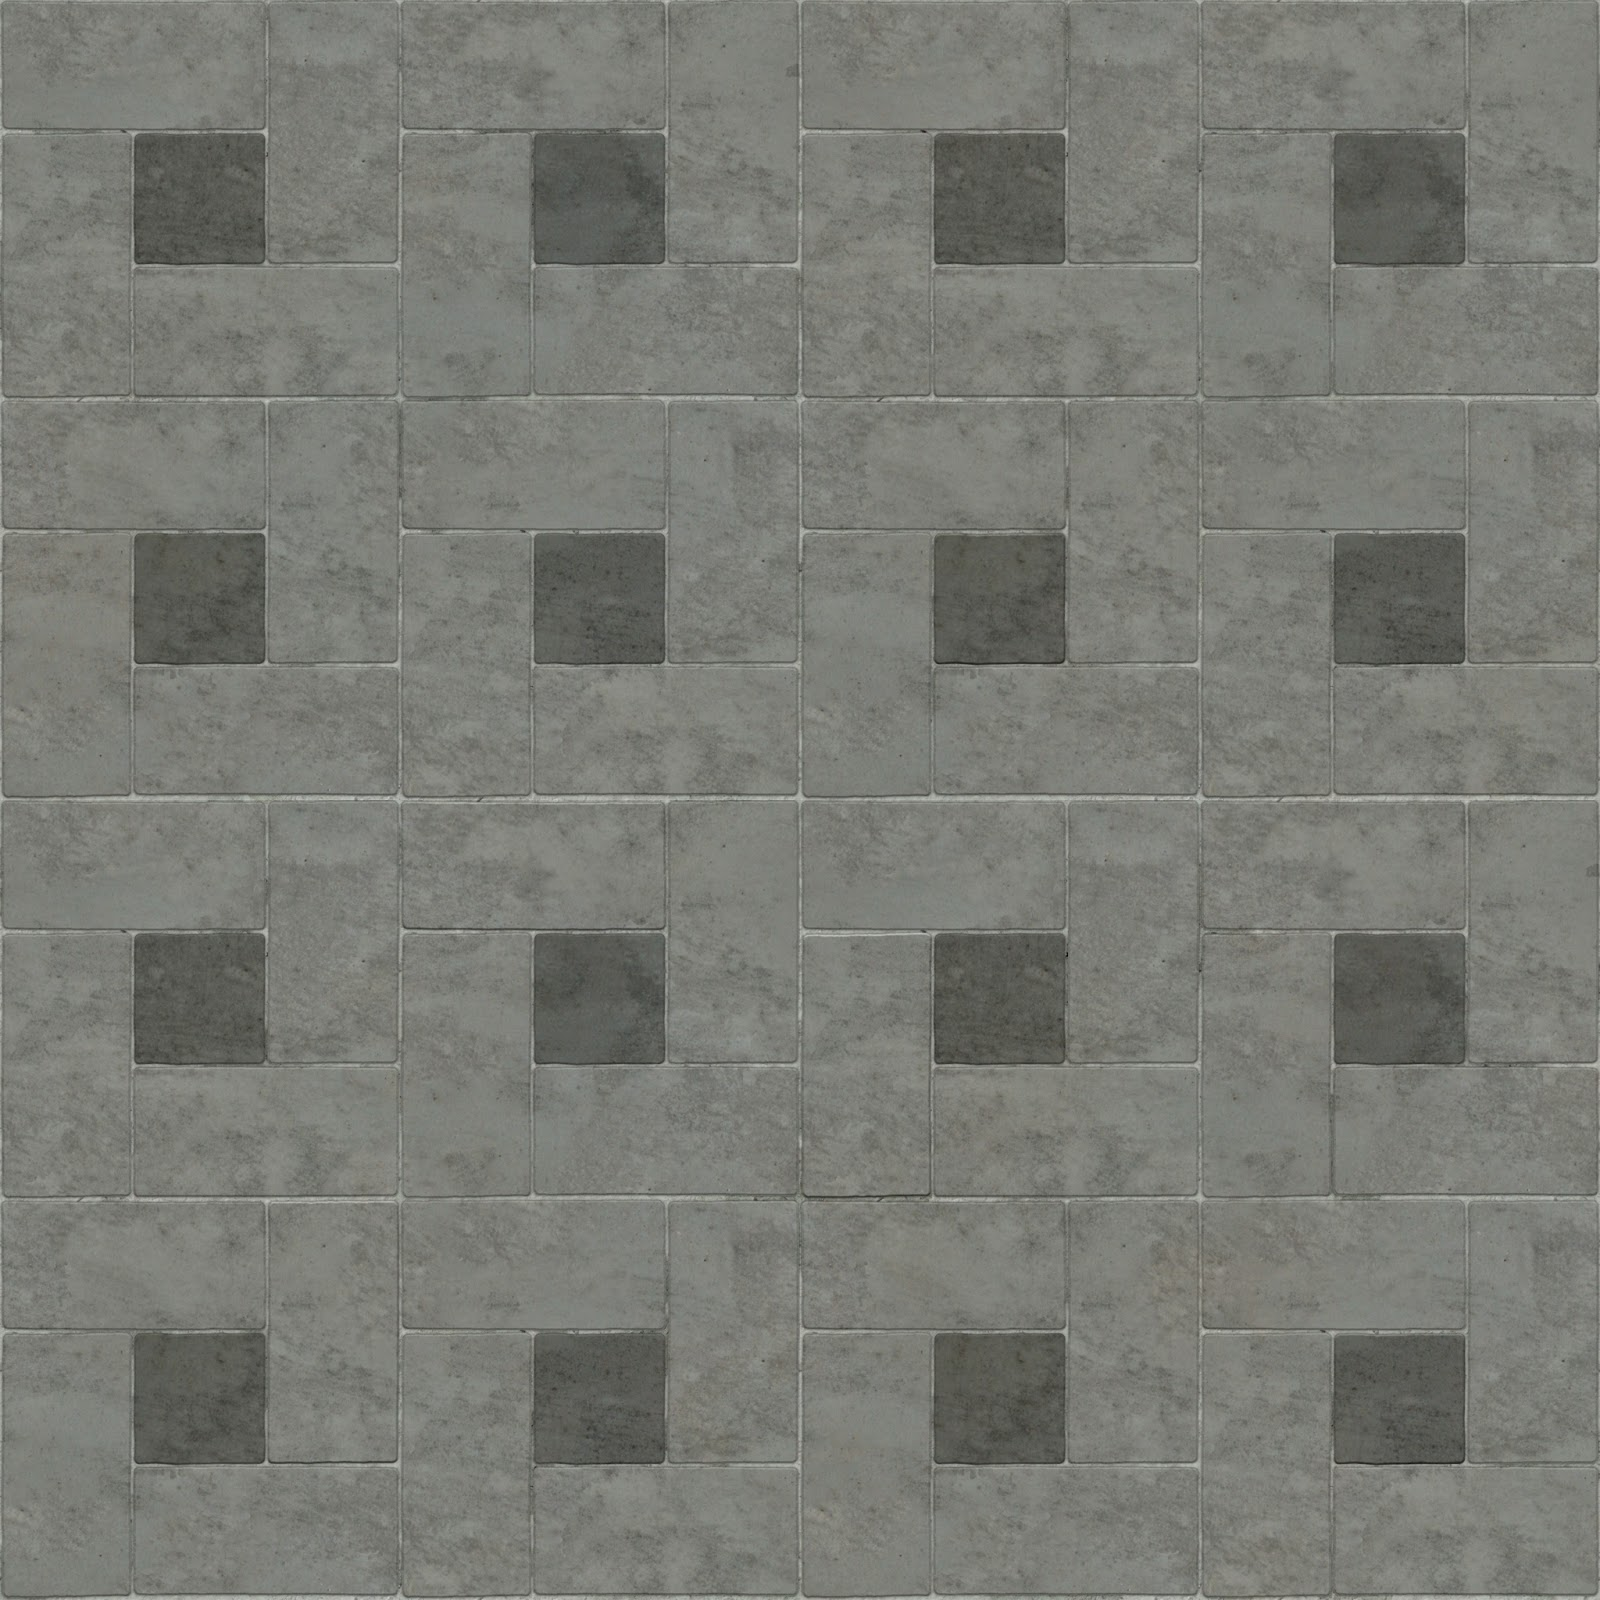 Brick Pavement Tile Floor Seamless Texture 2048x2048